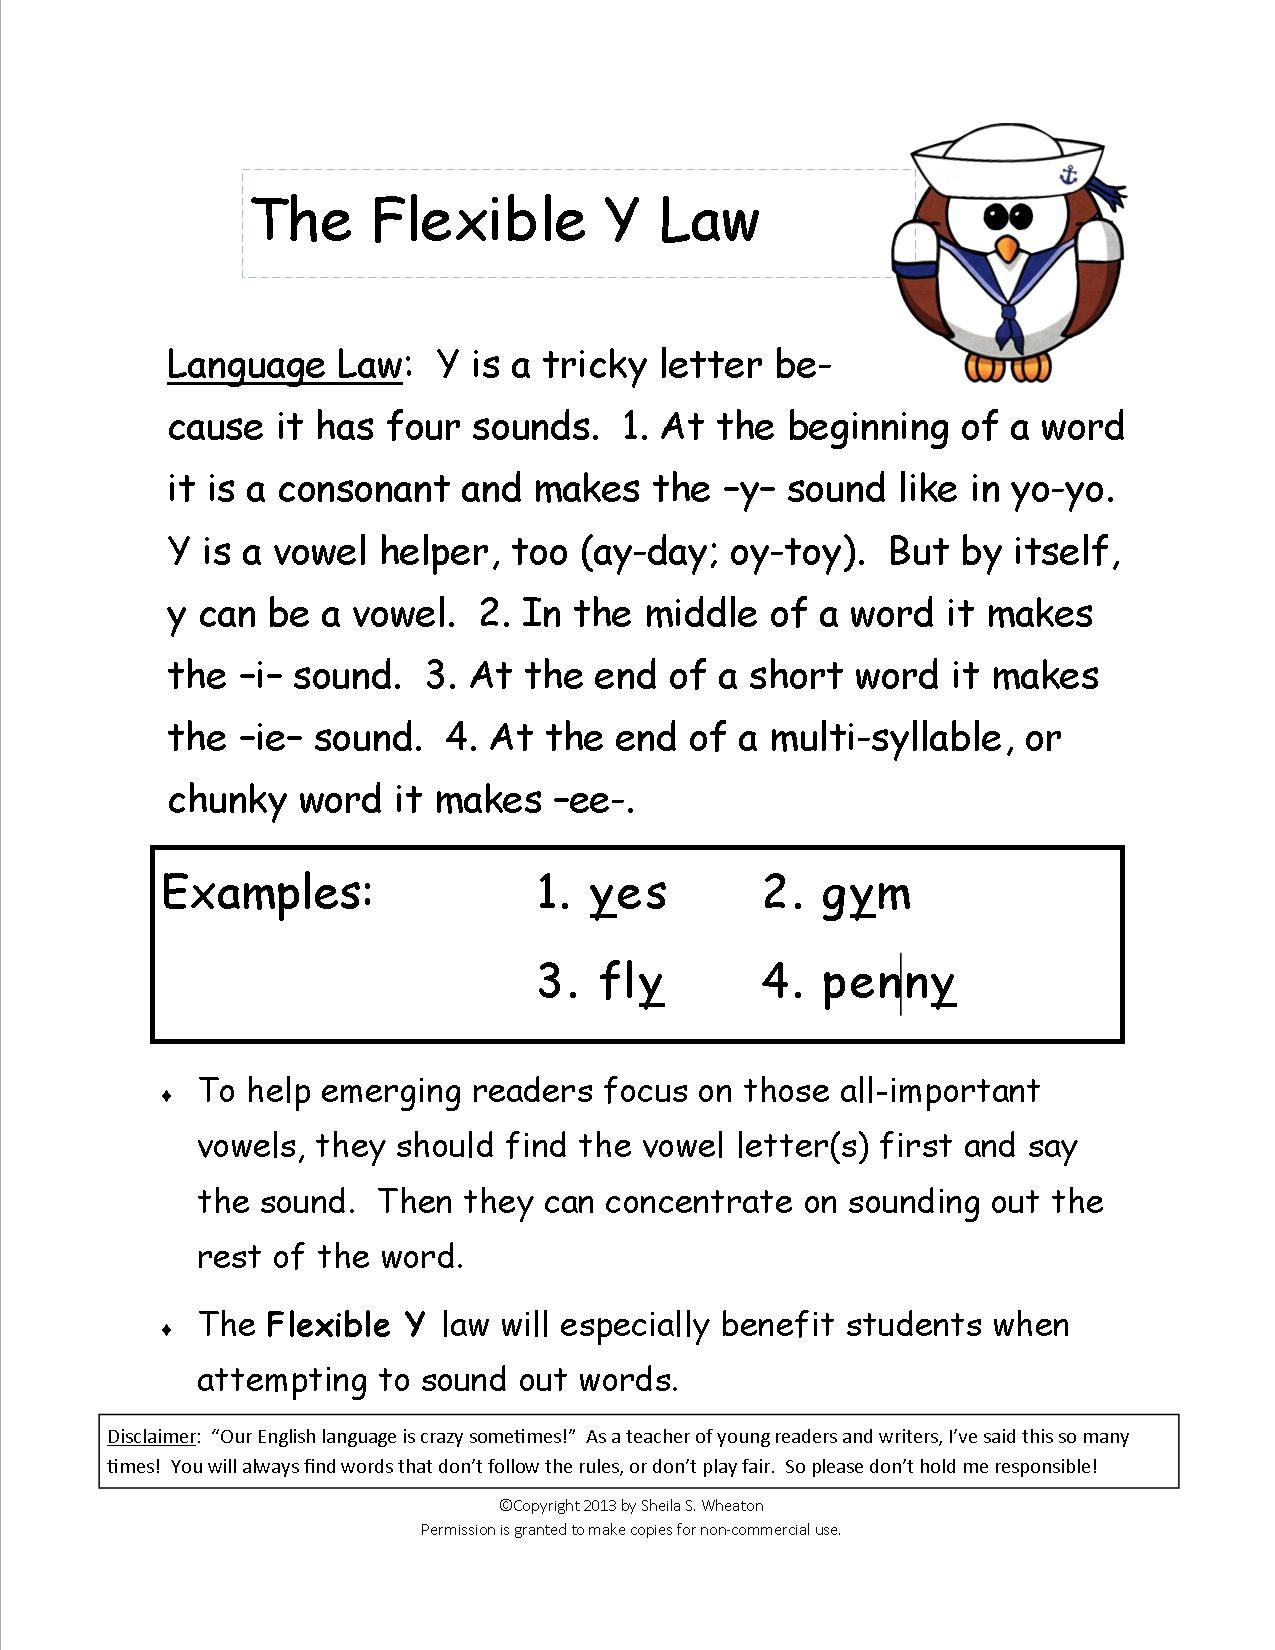 Flexible Y Teaches The Consonant Sound And 3 Vowel Sounds Of The Letter Y